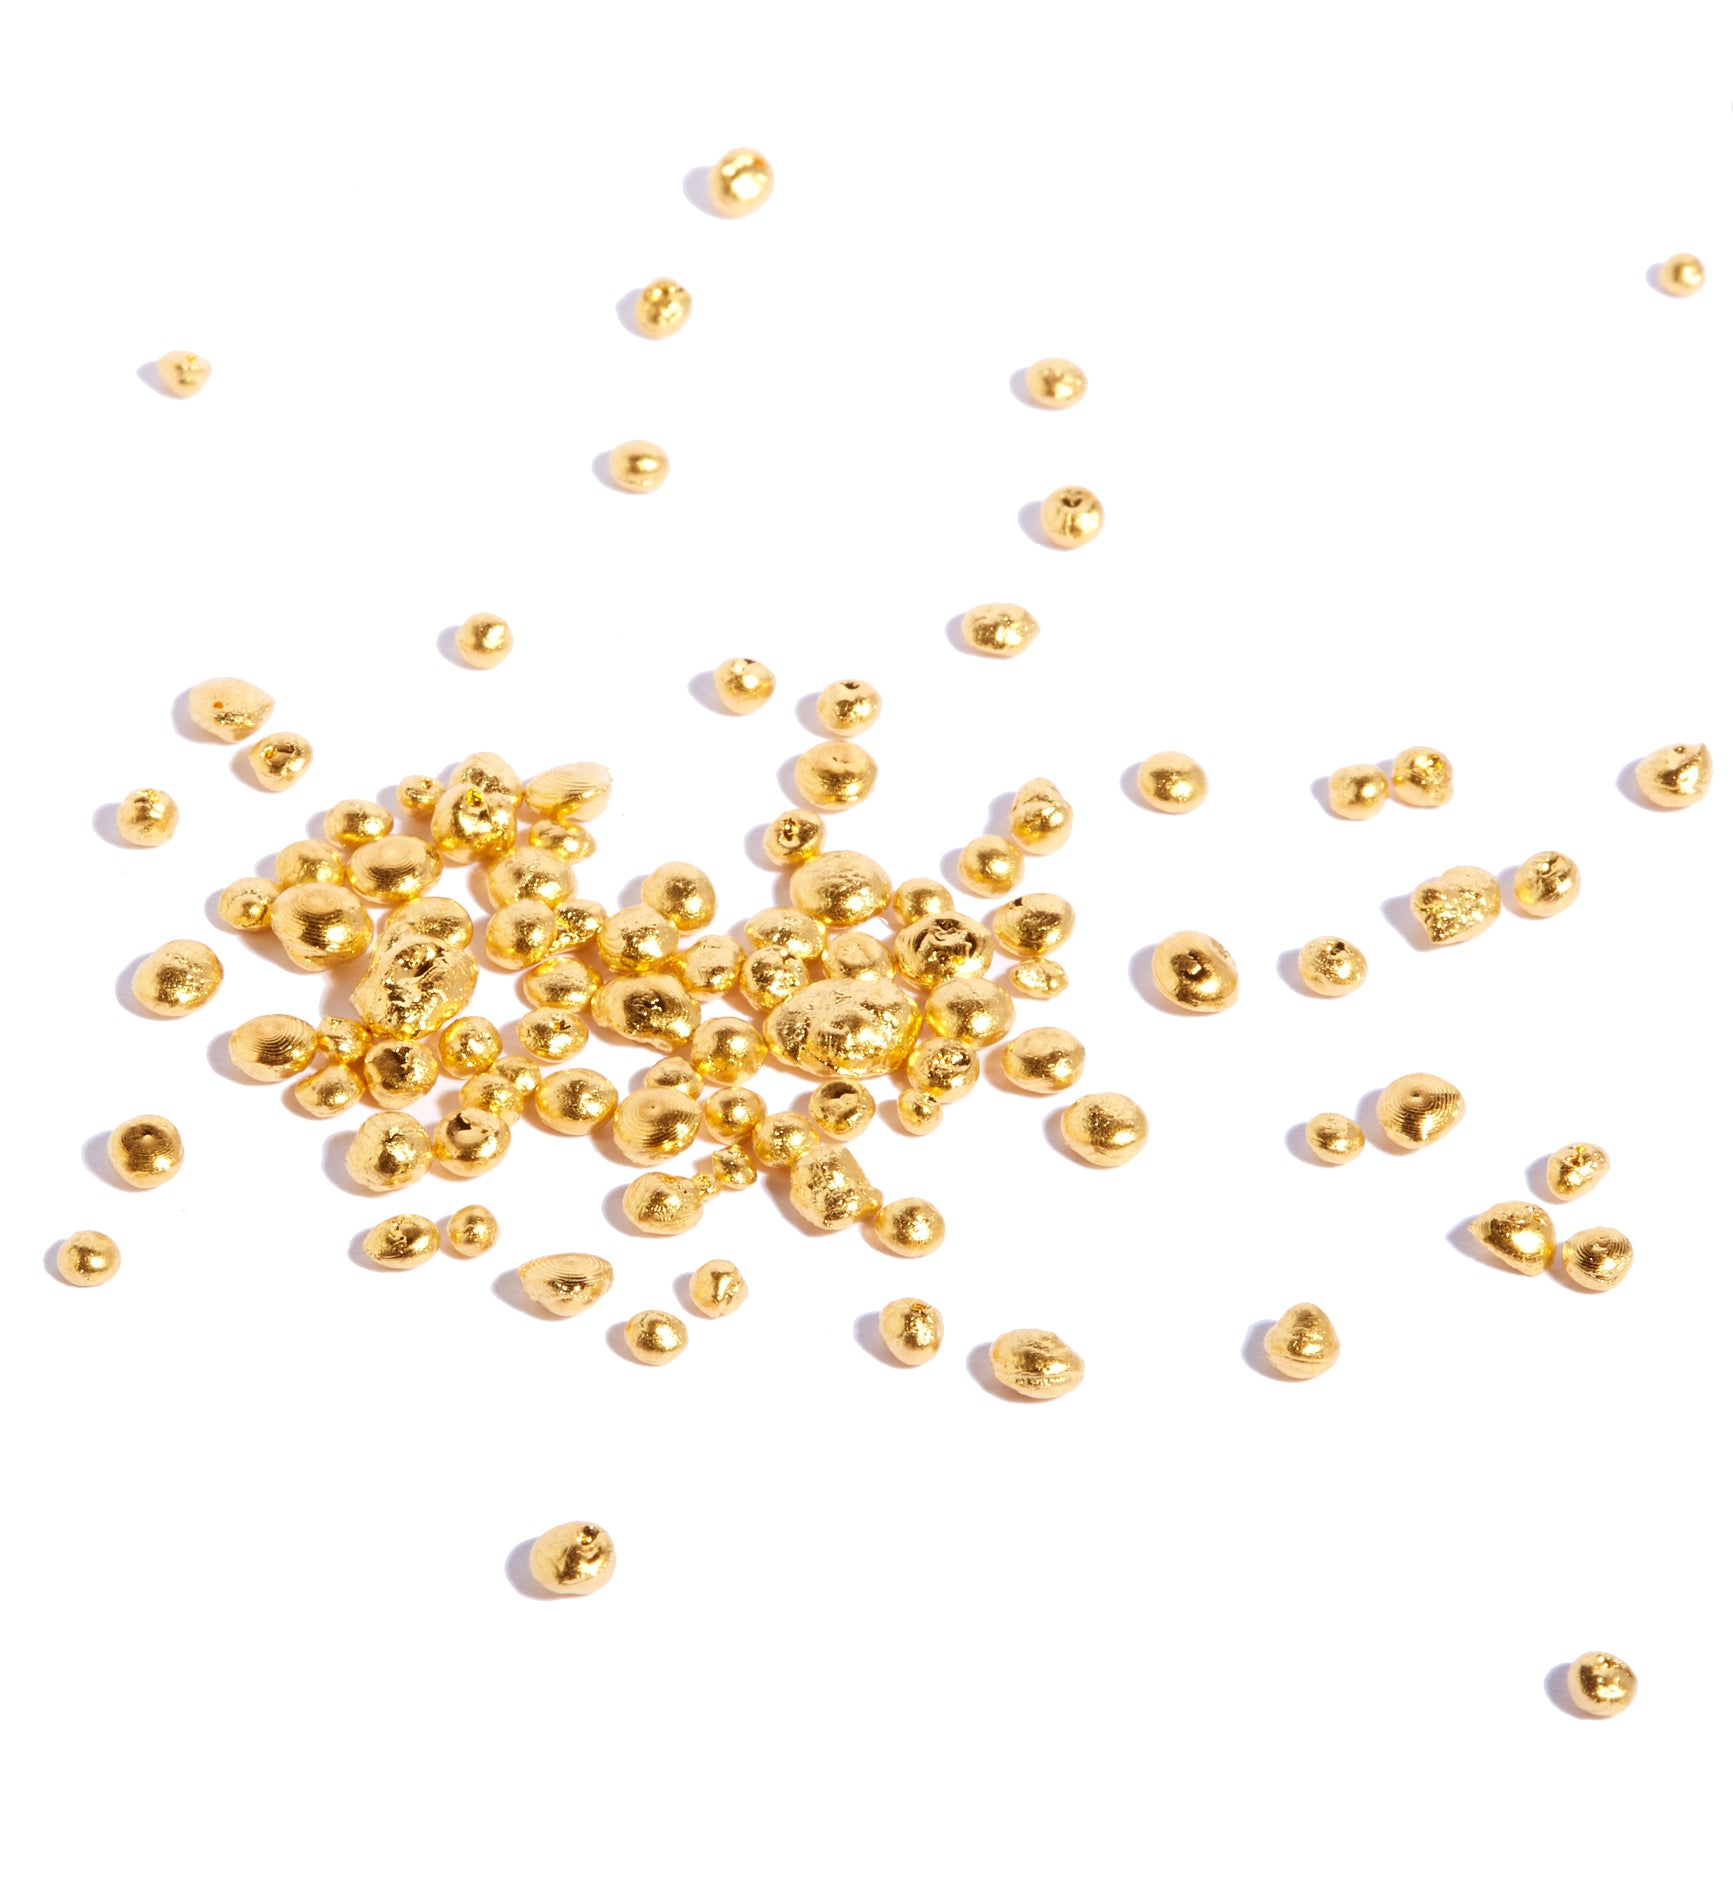 https://cdn.shopify.com/s/files/1/0571/9261/t/15/assets/gold%20granules-1509681329720.jpg?5288535739598596517